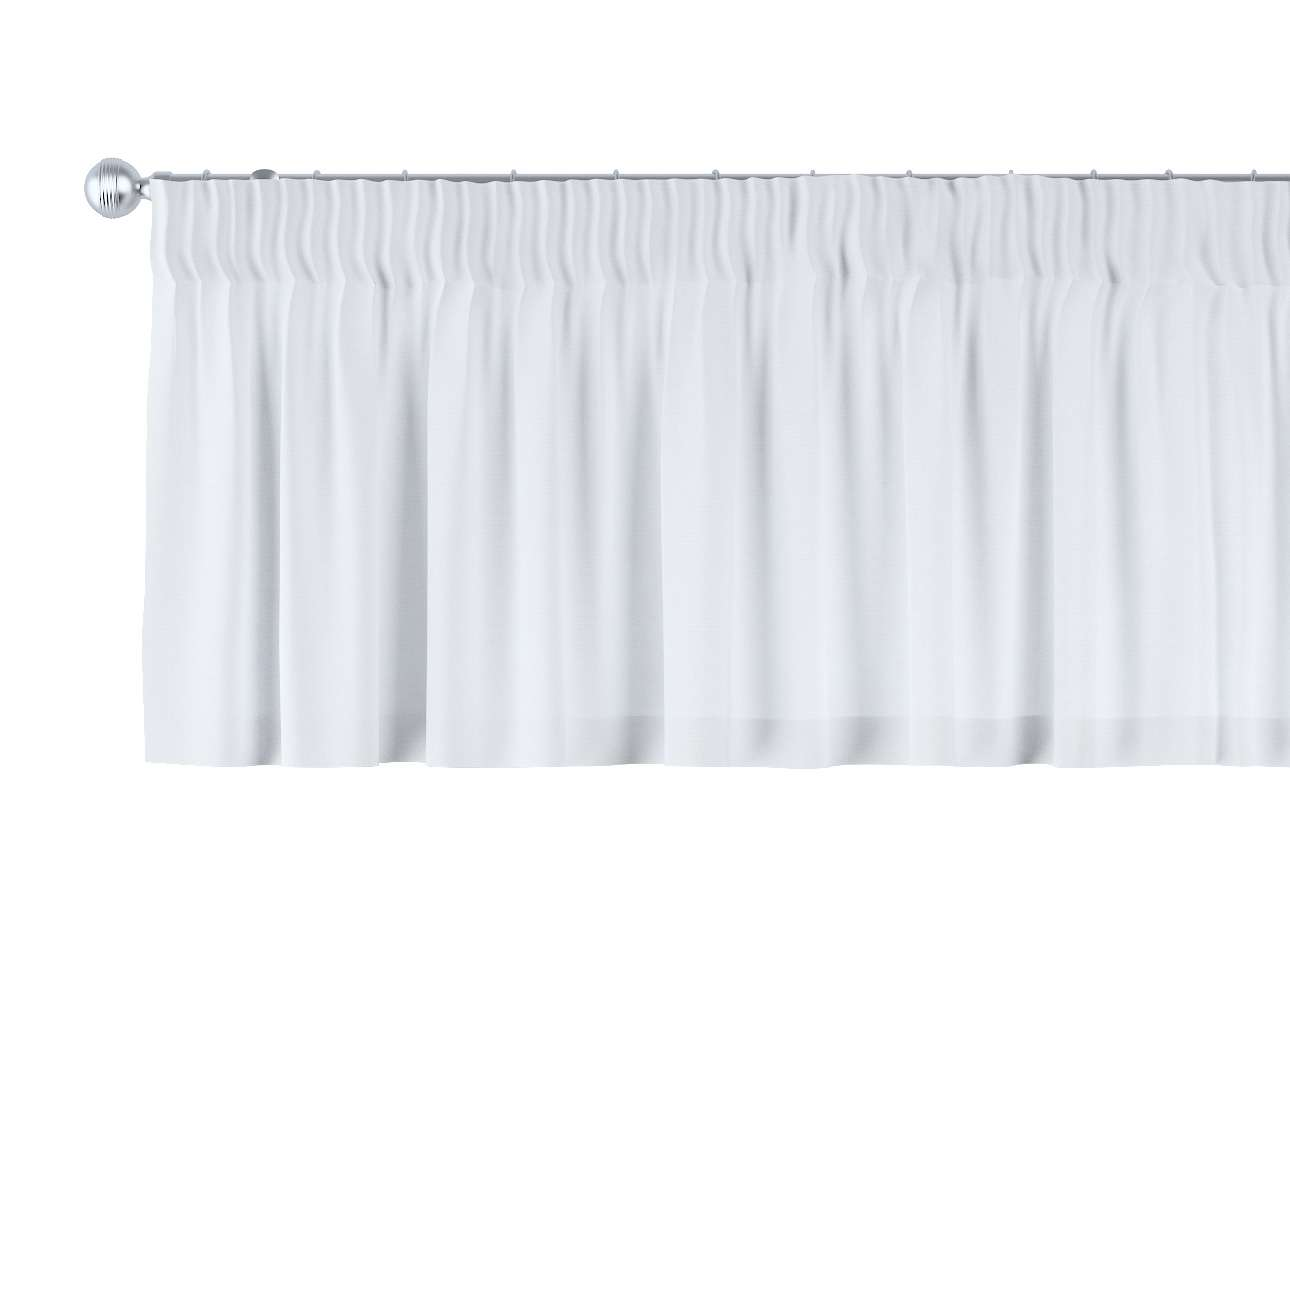 Pencil pleat pelmet 130 x 40 cm (51 x 16 inch) in collection Loneta , fabric: 133-02